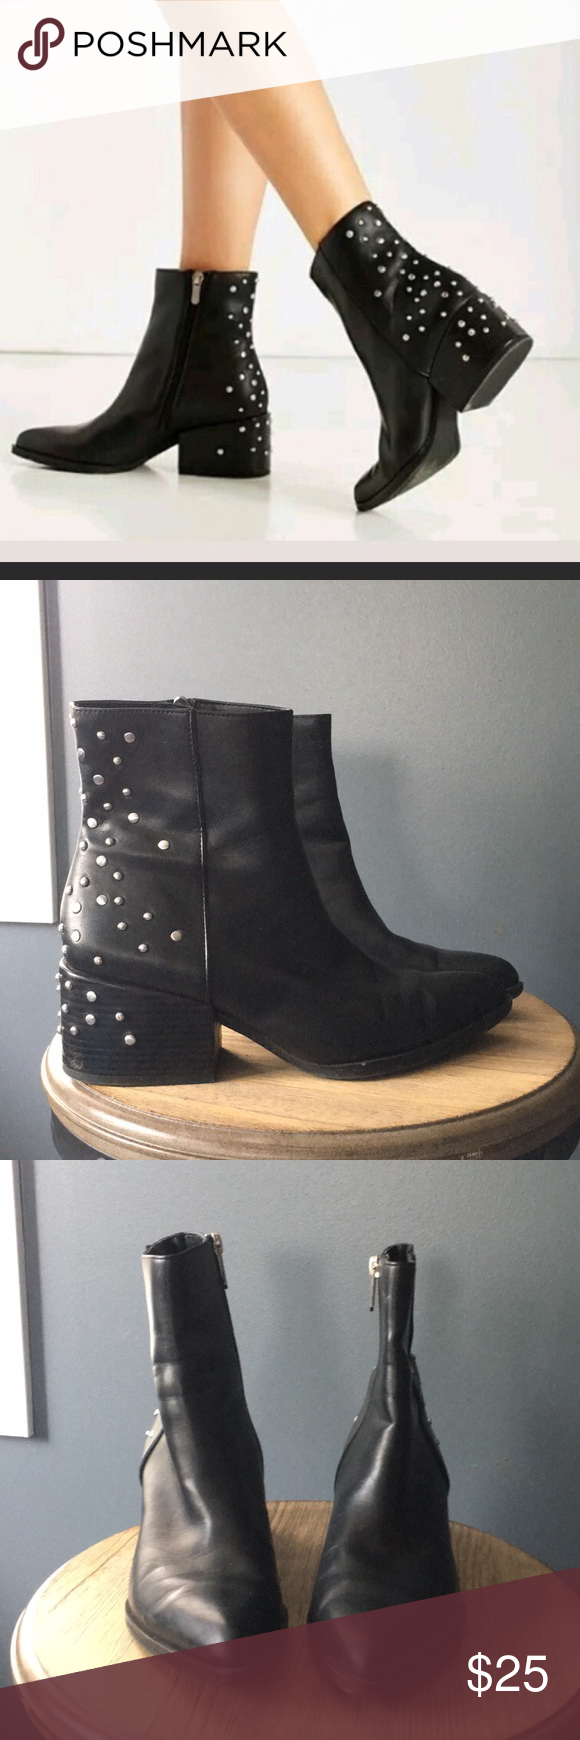 604f10e5699a69 Circus by sam edelman rae boot Studded boot good shape missing 3 studs as  shown but not that noticeable. Super trendy block heel Sam Edelman Shoes  Ankle ...